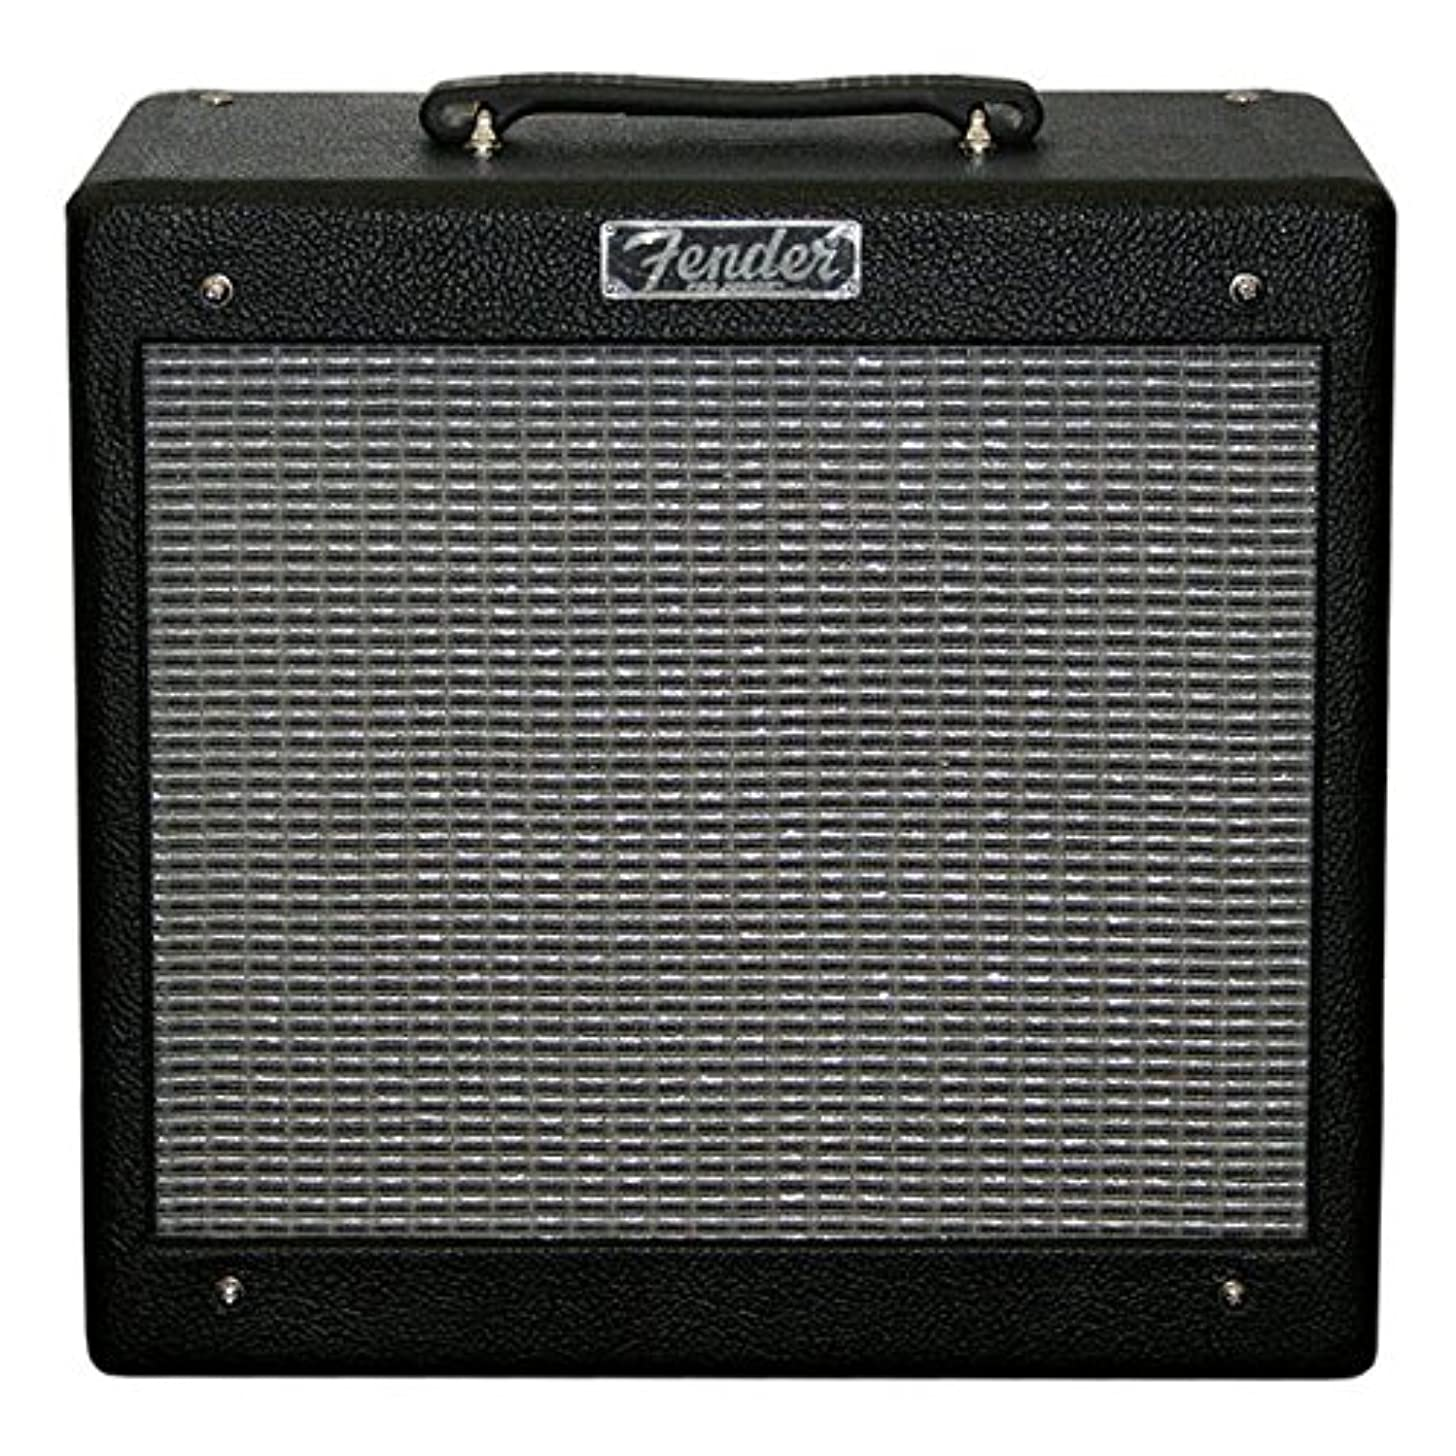 Fender Pro Junior III 15-Watt 1x10-Inch Guitar Combo Amp - Black